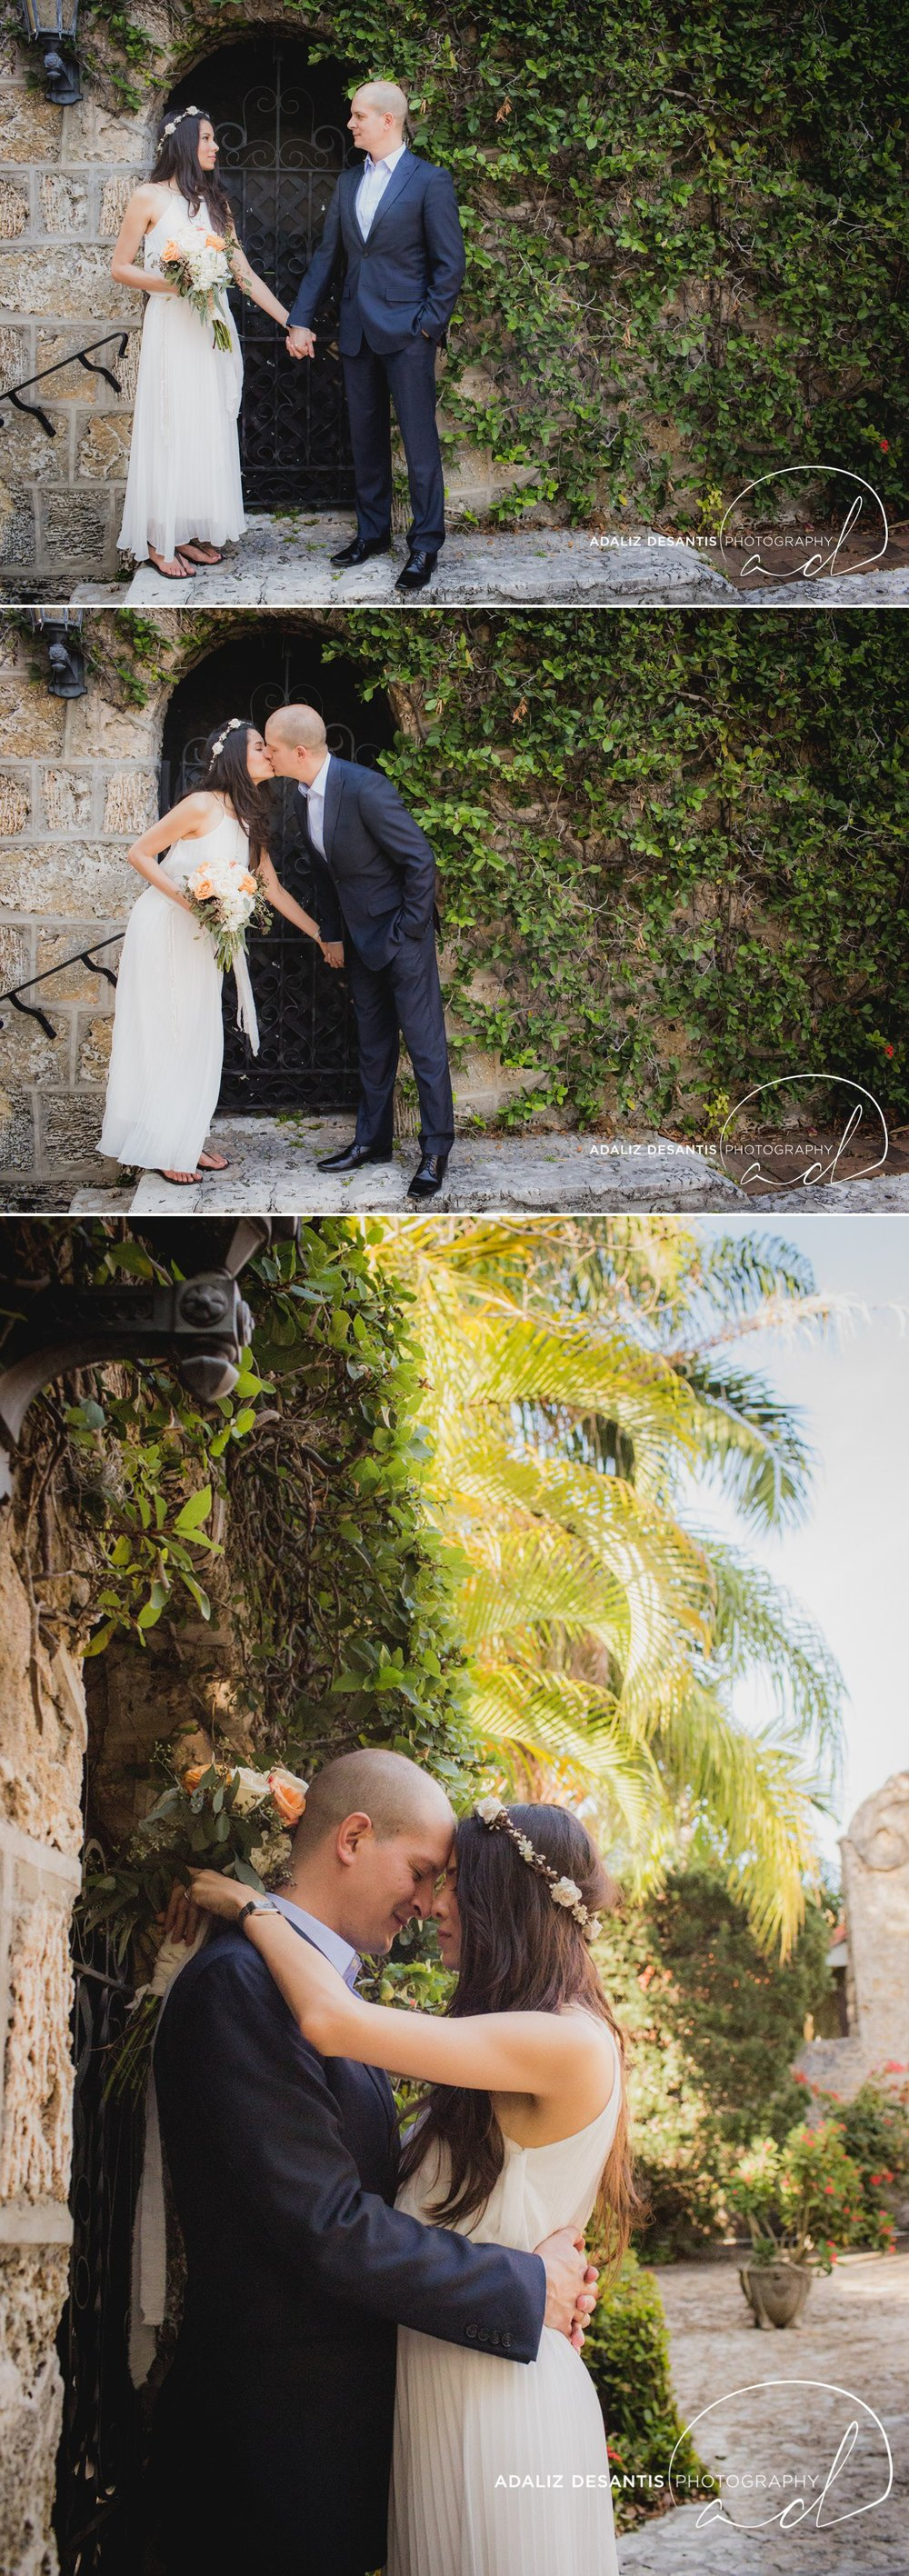 plymouth-congregational-church-coconut-grove-miami-elopement-matrimonio-civil-coral-gables 19.jpg